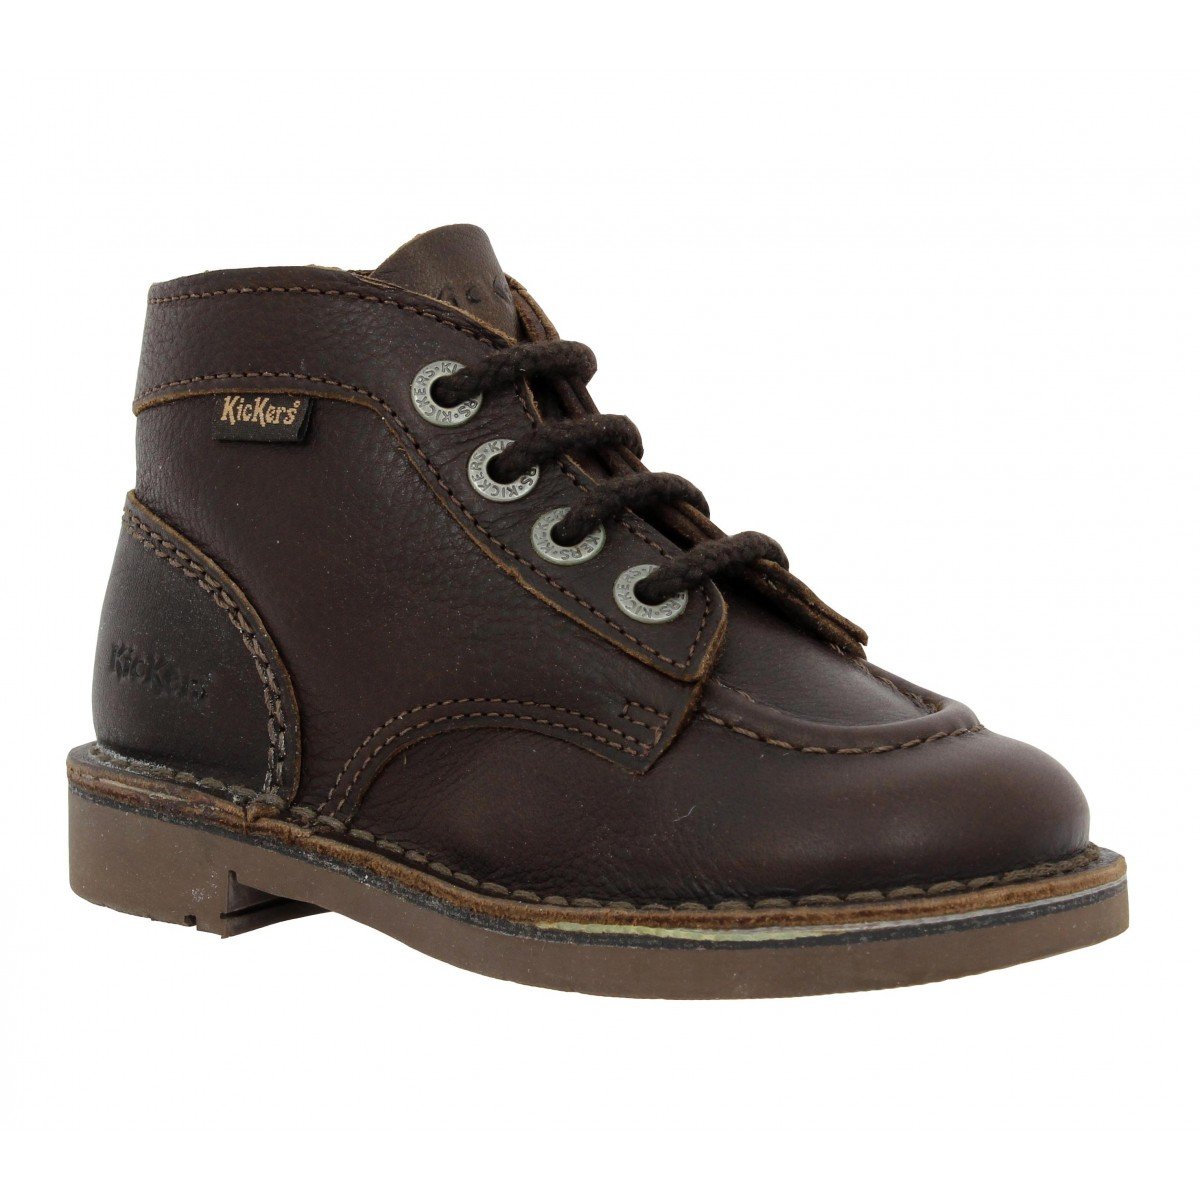 KICKERS Kick Col cuir Enfant Marron